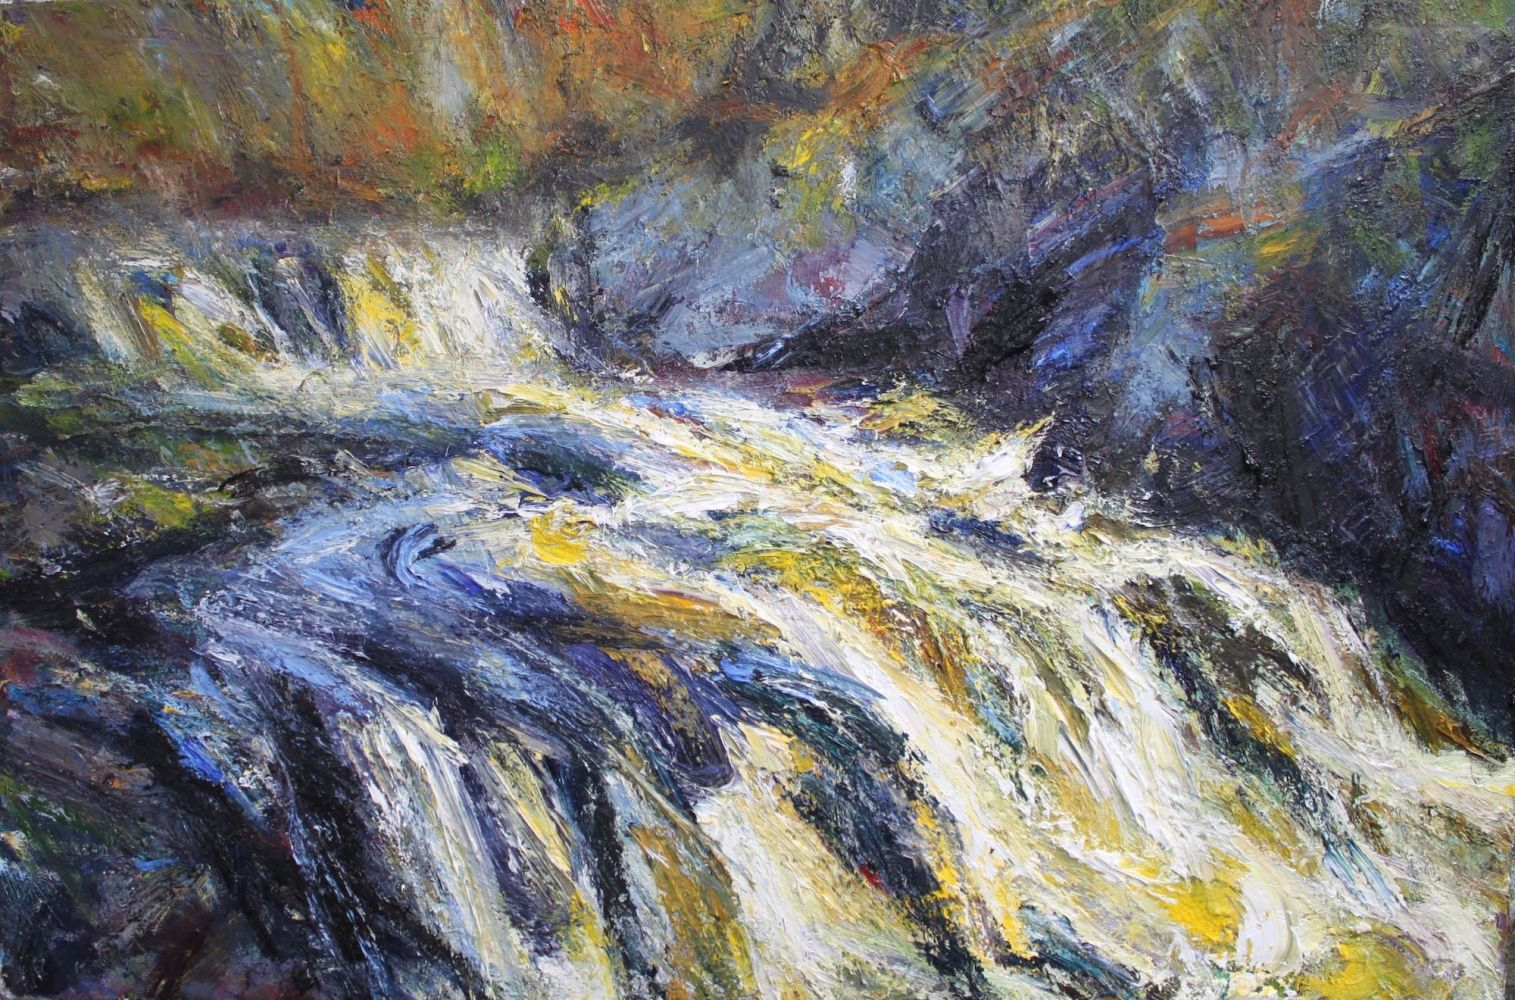 Contemporary painting - Jonathan Shearer - Swollen river, Black water